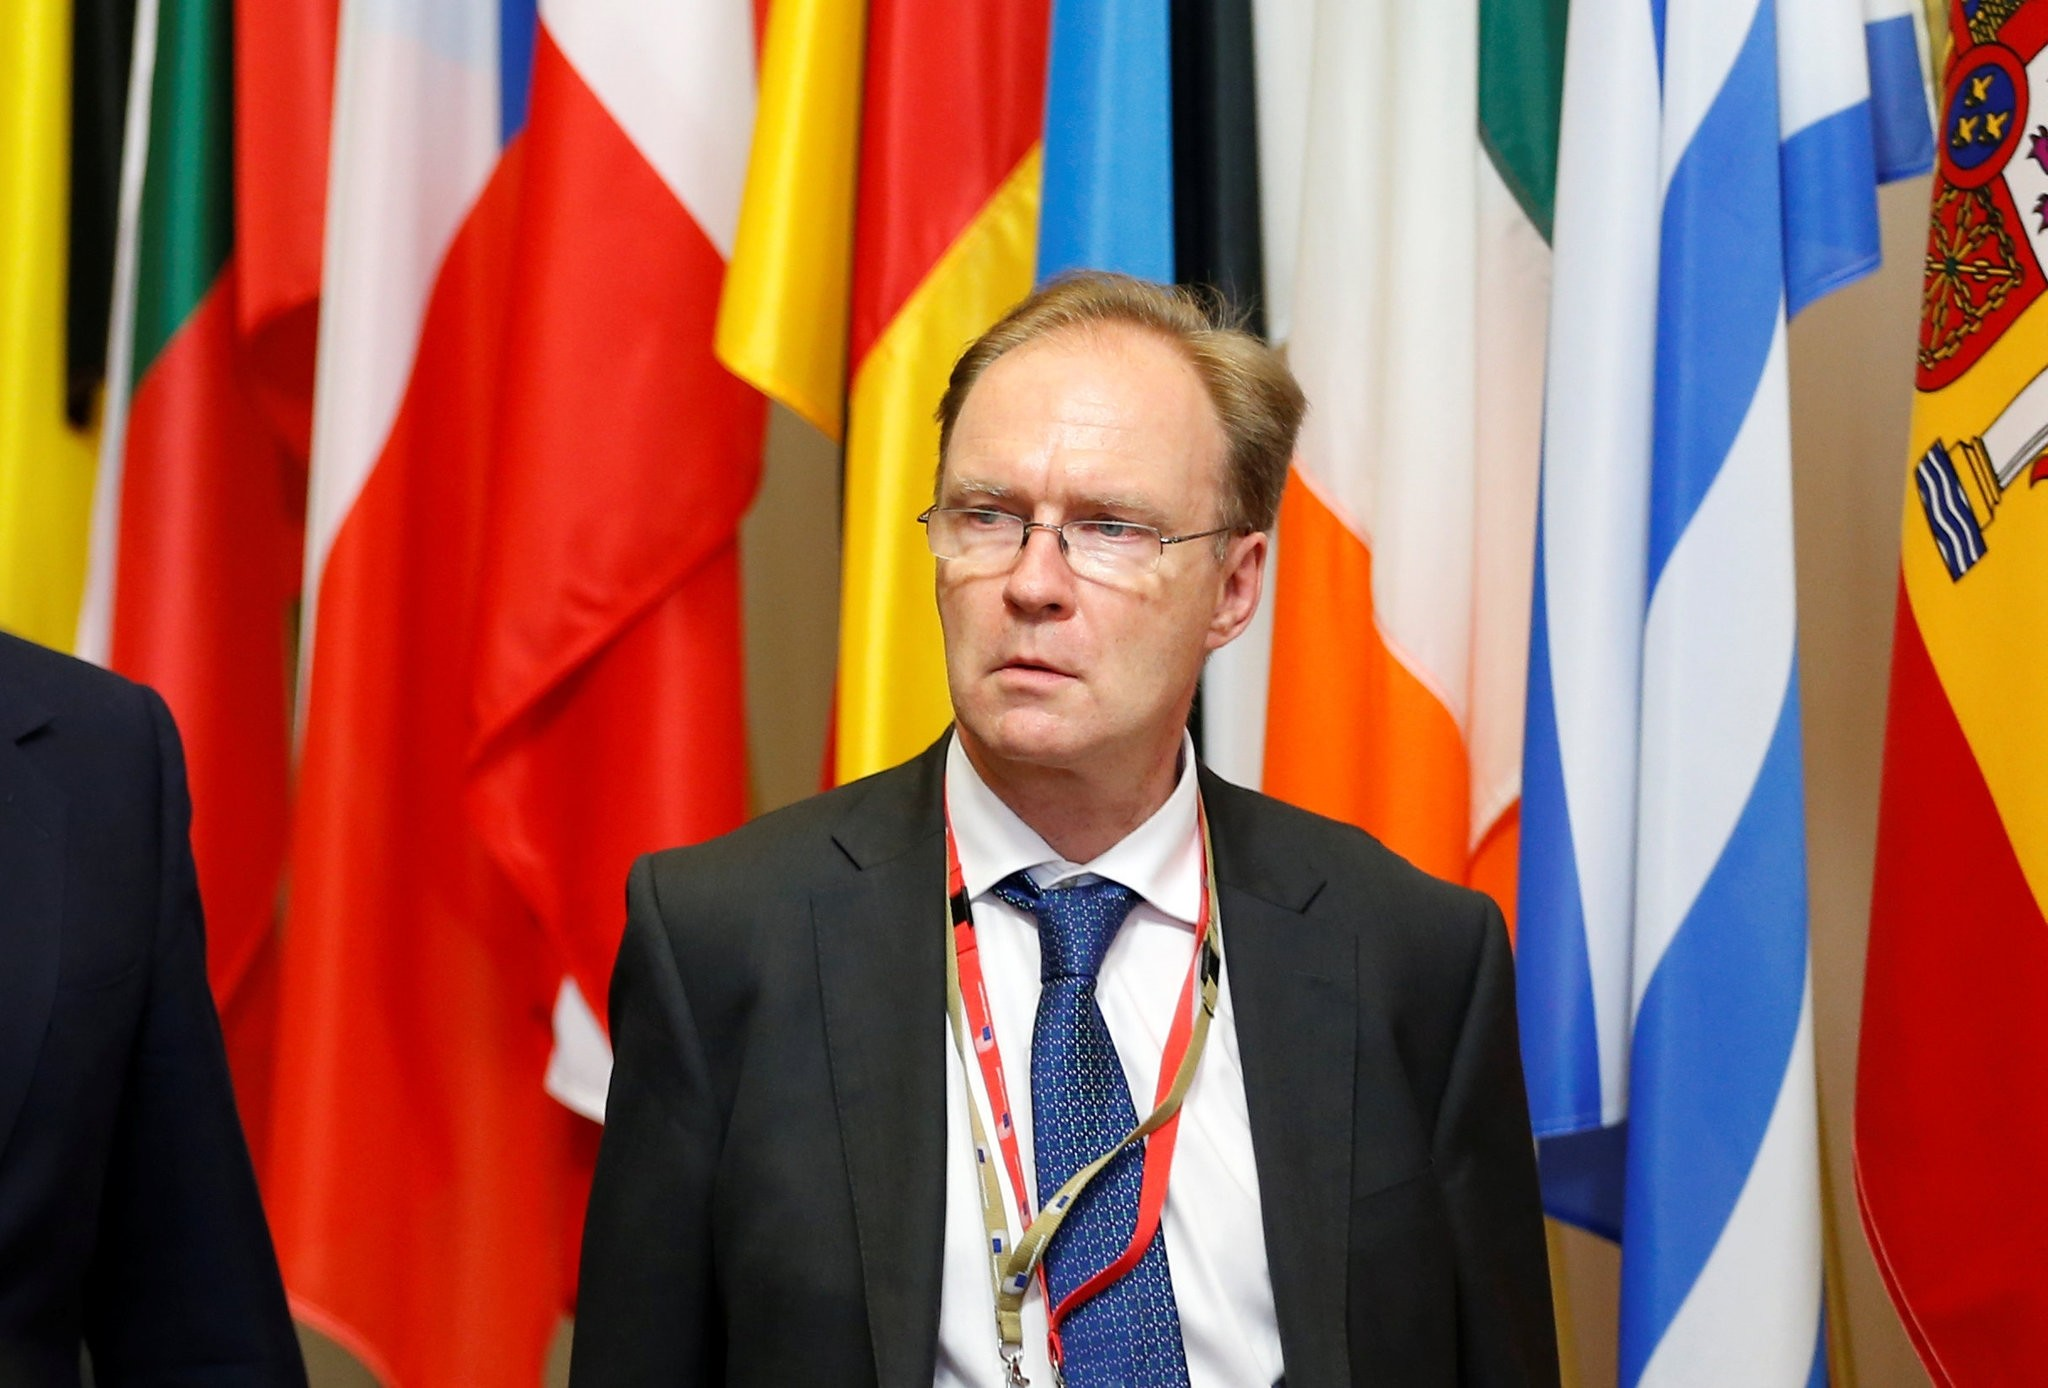 Britain's ambassador to the European Union Ivan Rogers is pictured leaving the EU Summit in Brussels, Belgium, June 28, 2016. (Reuters Photo)